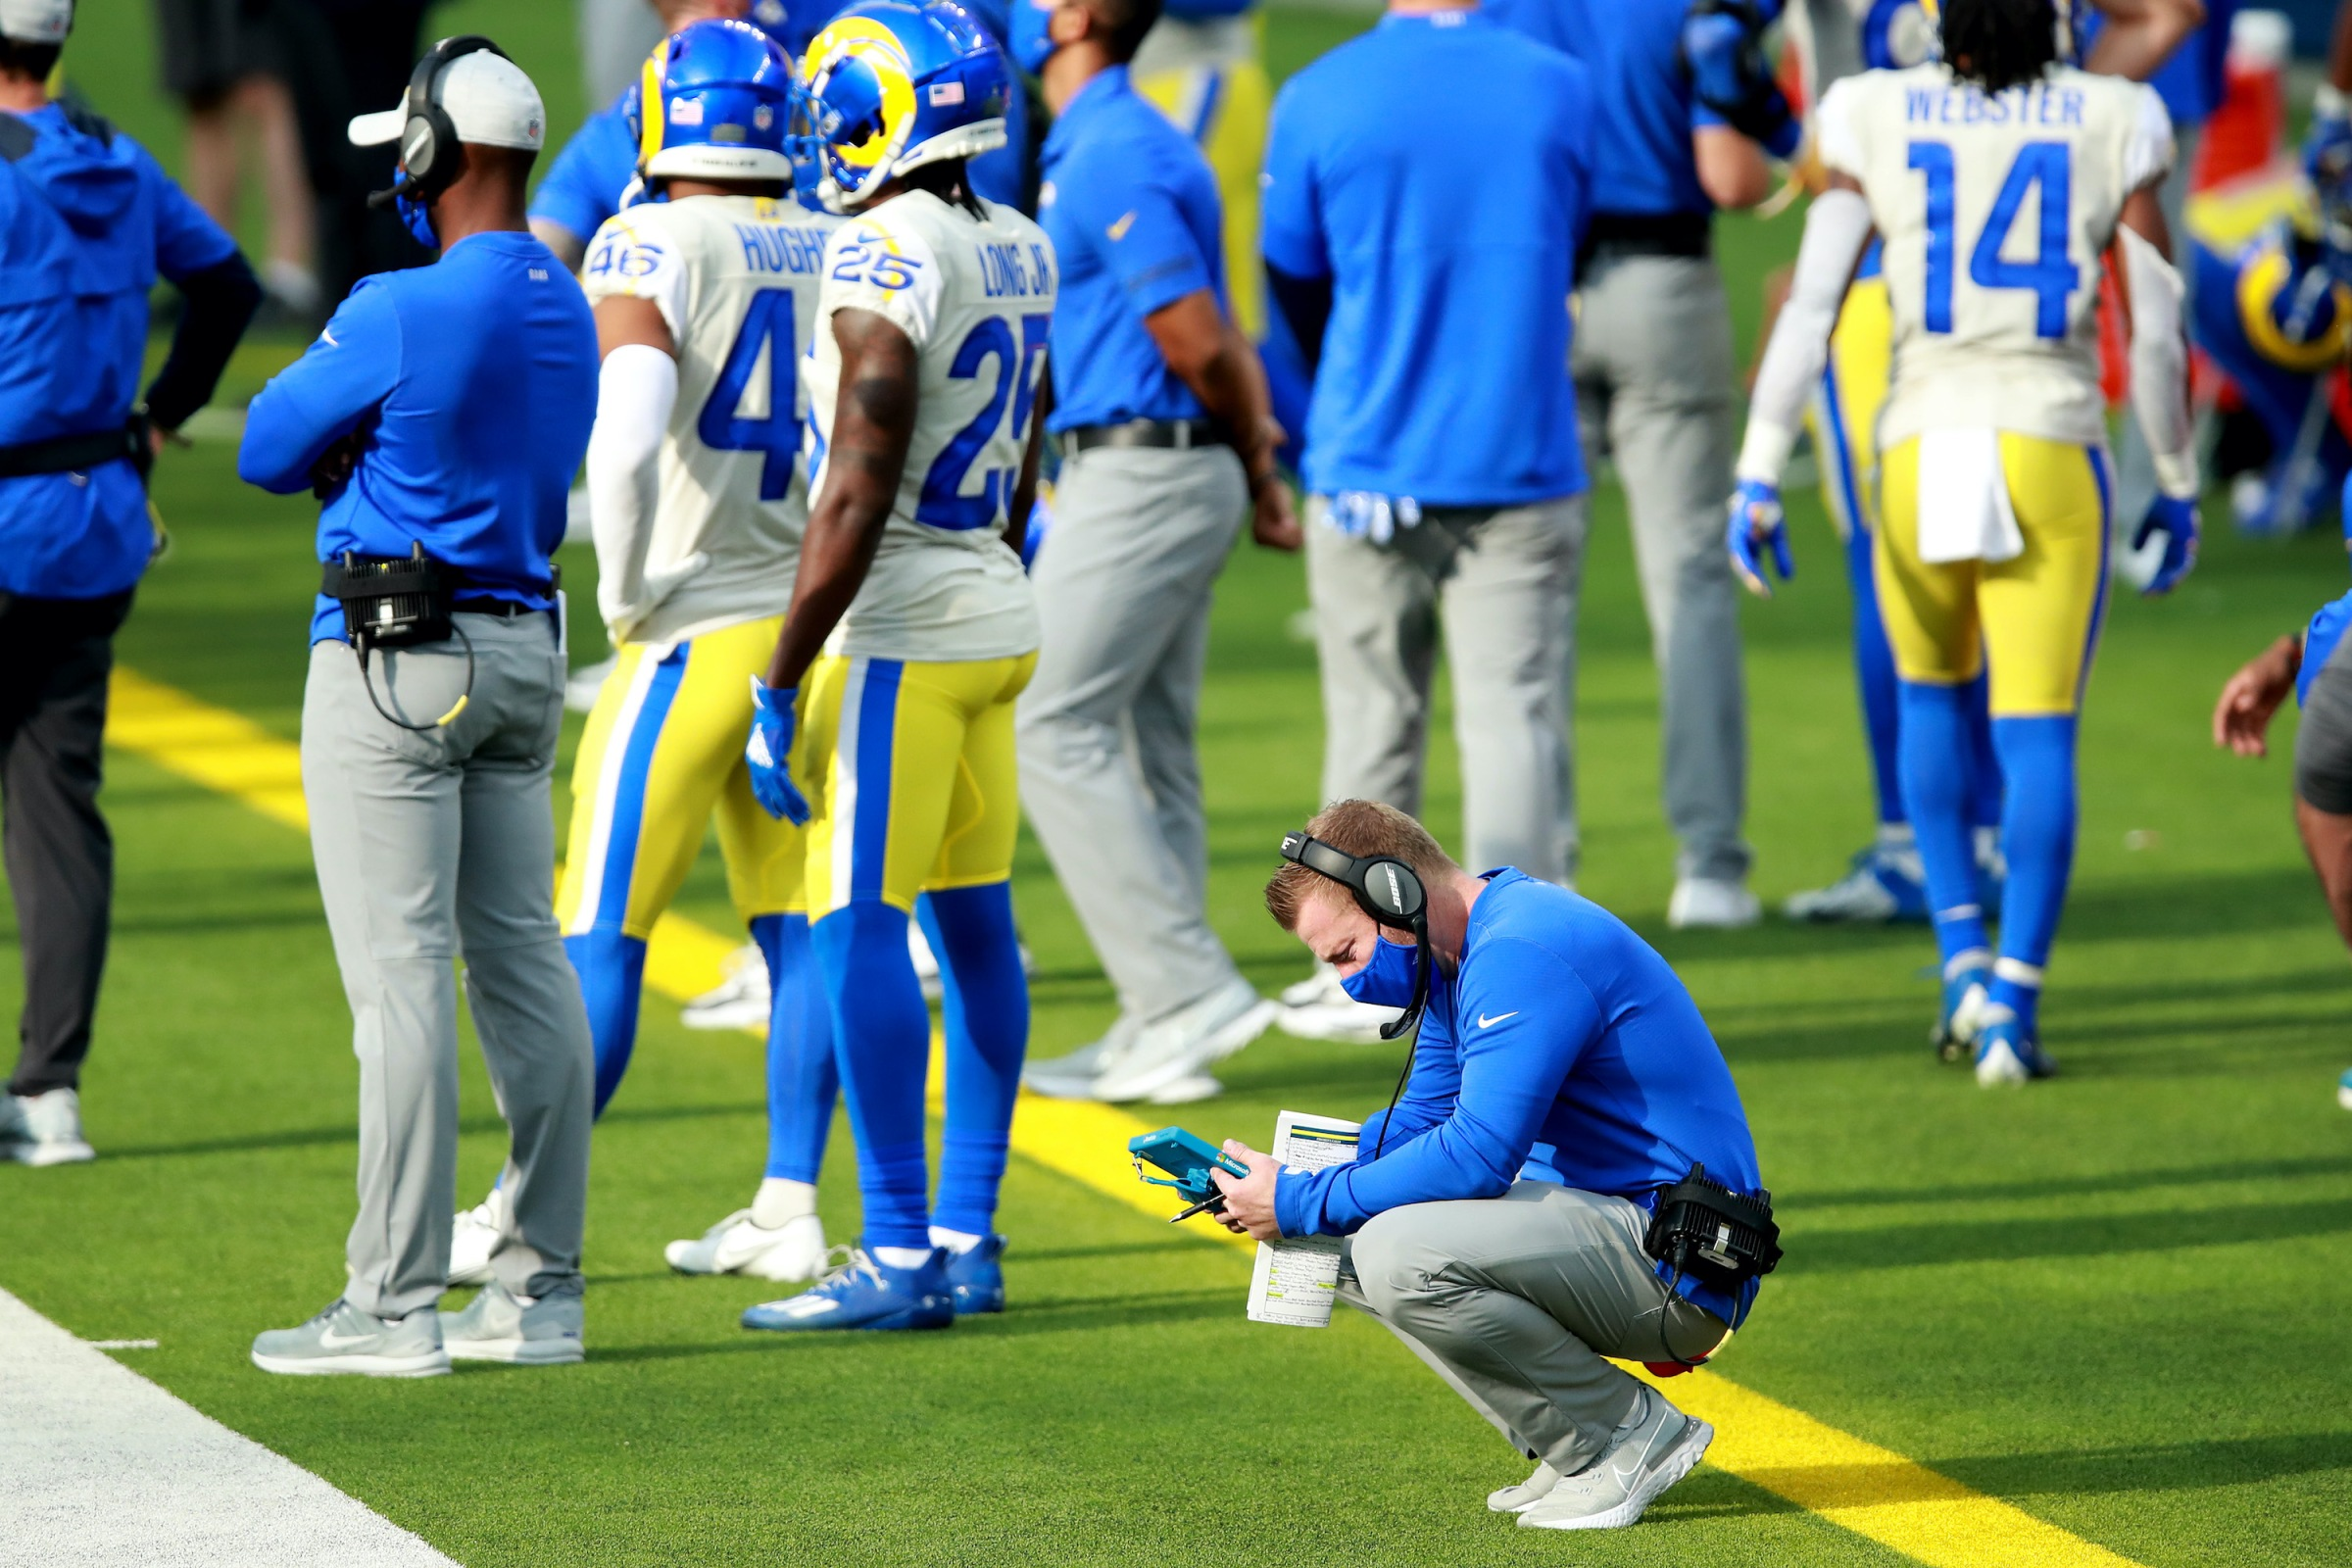 Head coach Sean McVay of the Los Angeles Rams watches a replay during the second quarter of a game against the New York Jets at SoFi Stadium on December 20, 2020 in Inglewood, California.